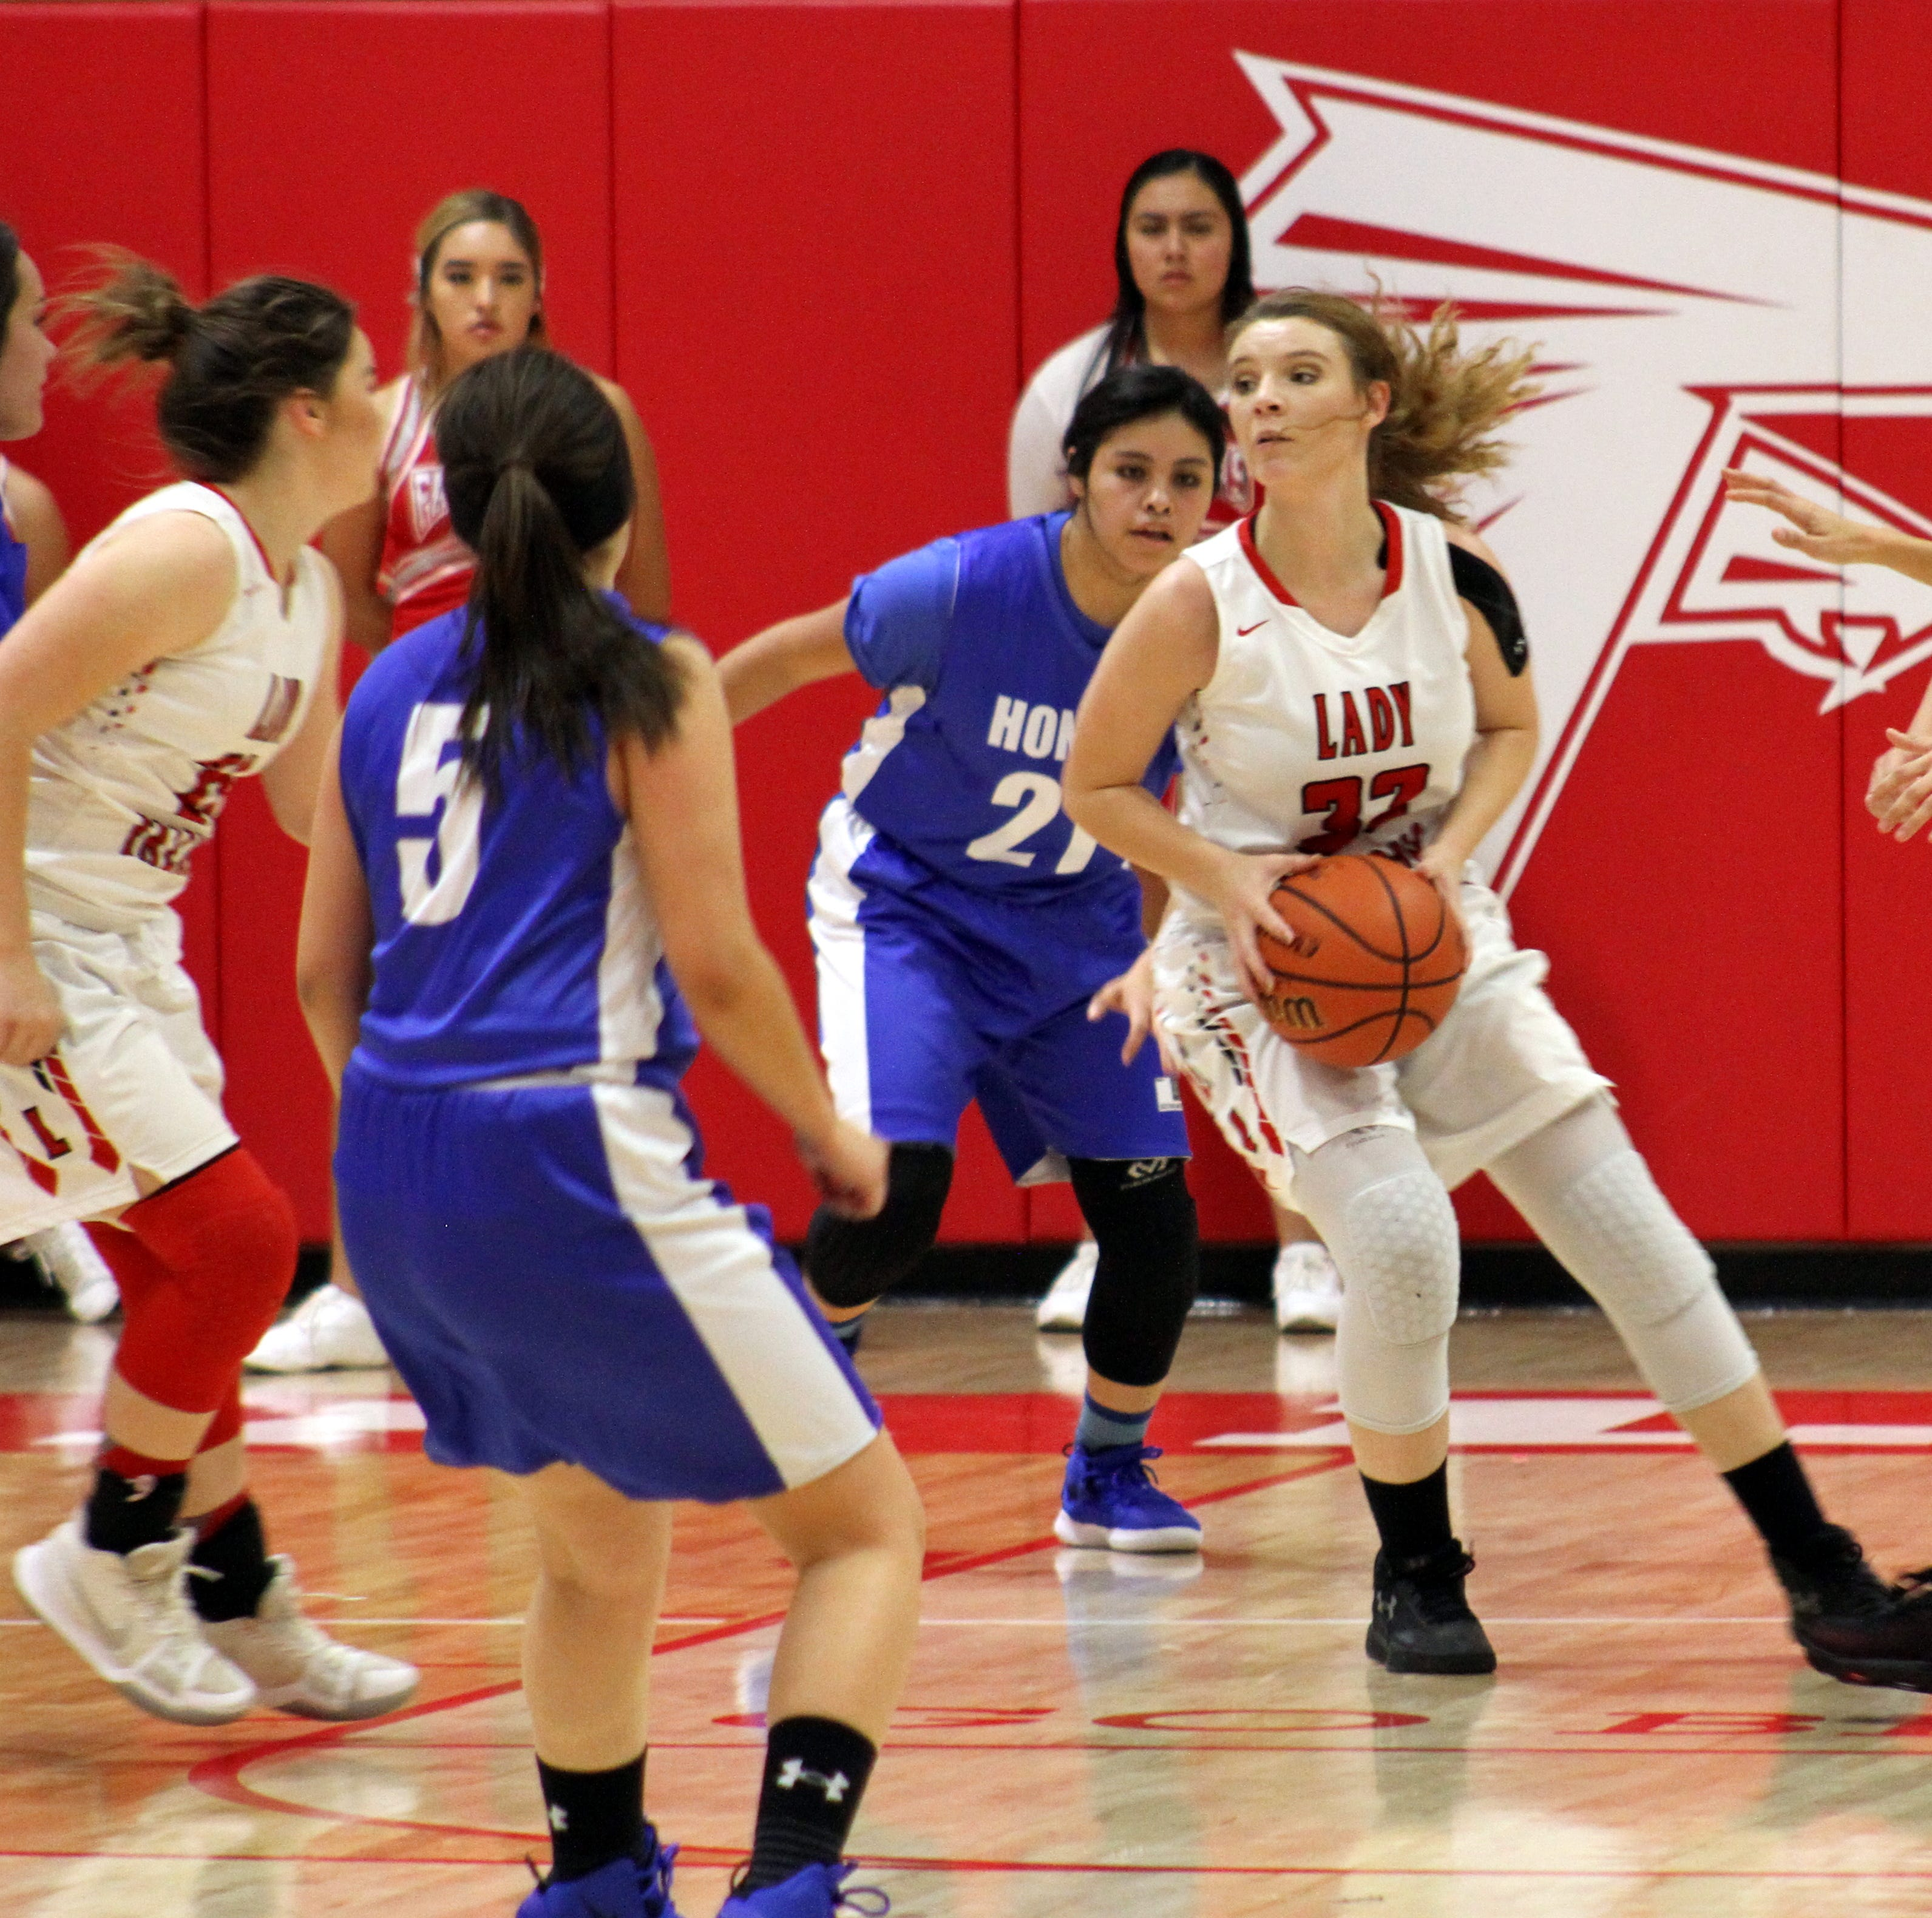 Depleted Loving Lady Falcons fall to Hondo Valley Eagles